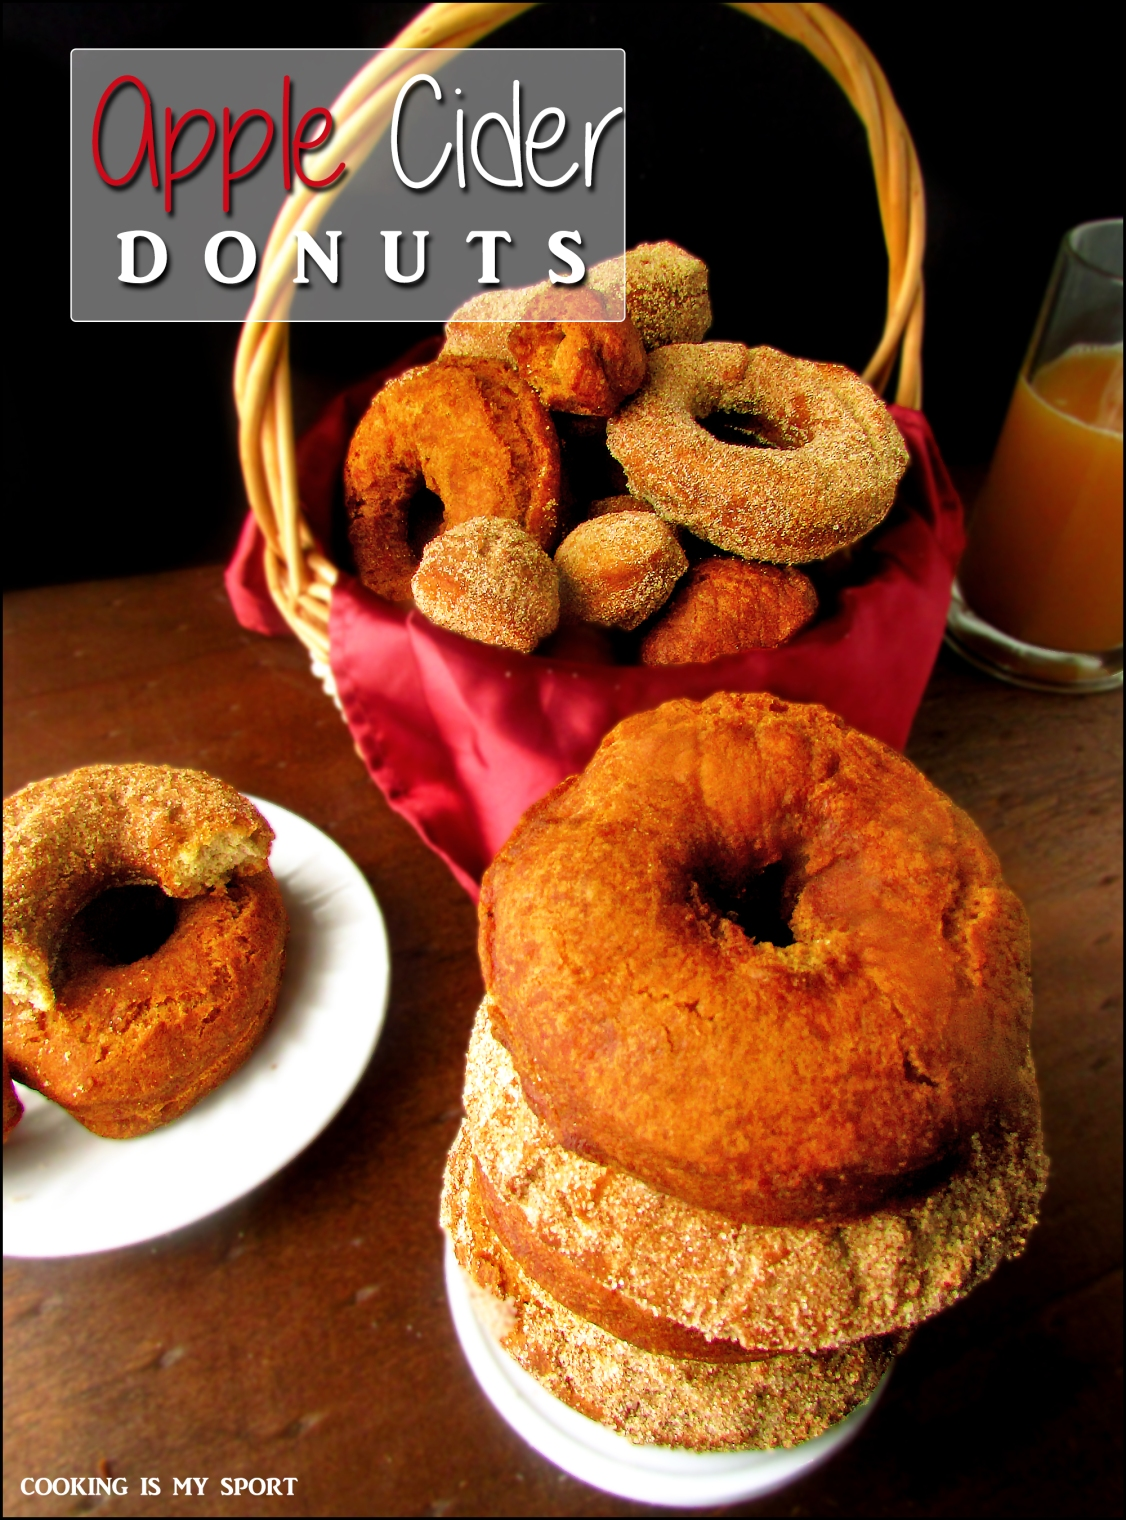 Apple Cider Donuts3